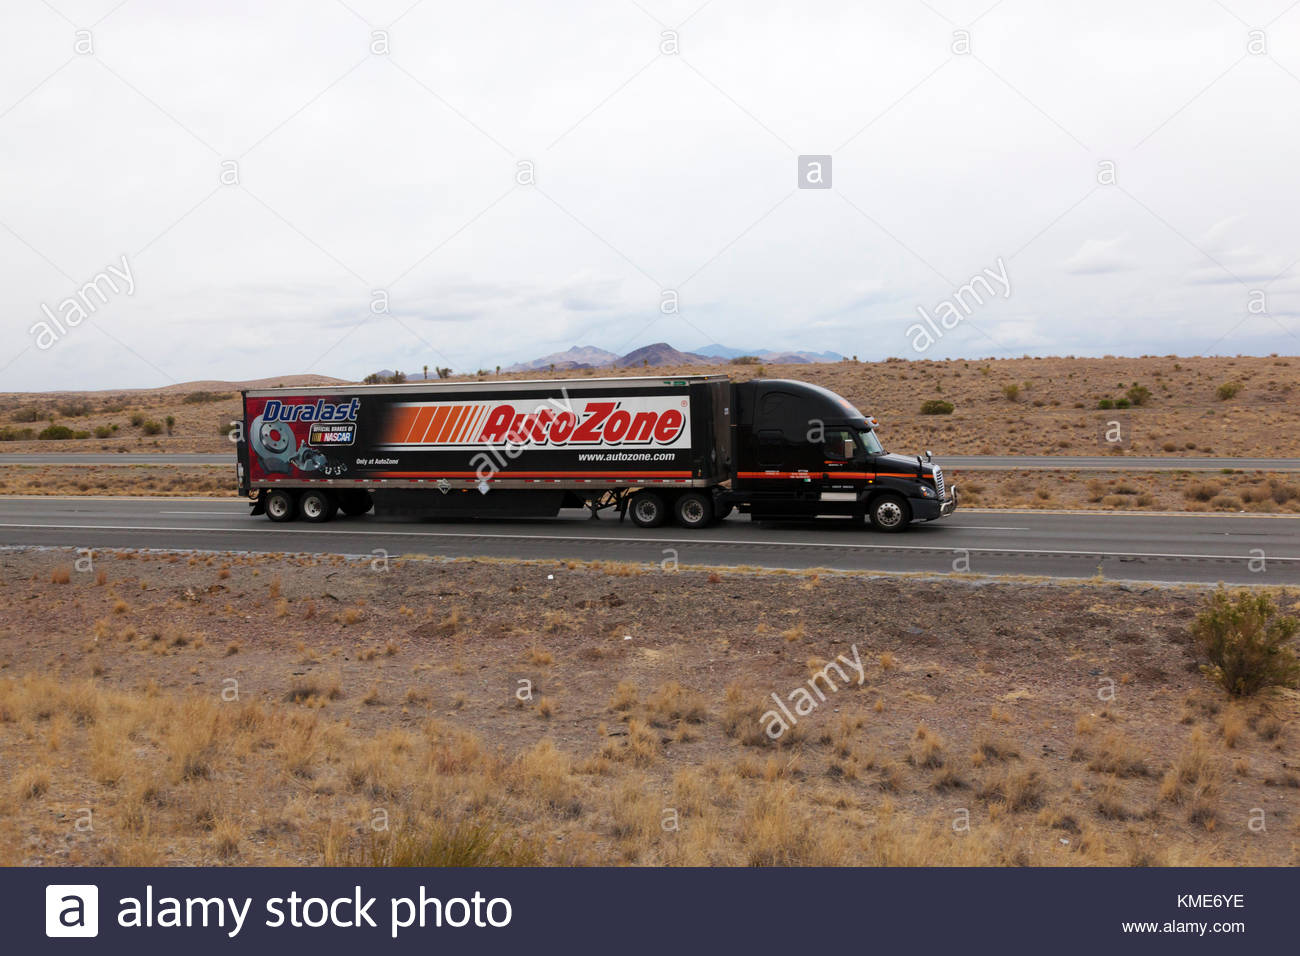 File also C Faf Ebc Ada B C A moreover Semi Tractor Pulling Cargo Trailer Autozone On Interstate In Southeasterrn Kme Ye likewise Frontlights X besides Dump Trailer Hydraulic Pump Wiring Diagram Luxury Installing A For. on interstate trailer wiring diagram